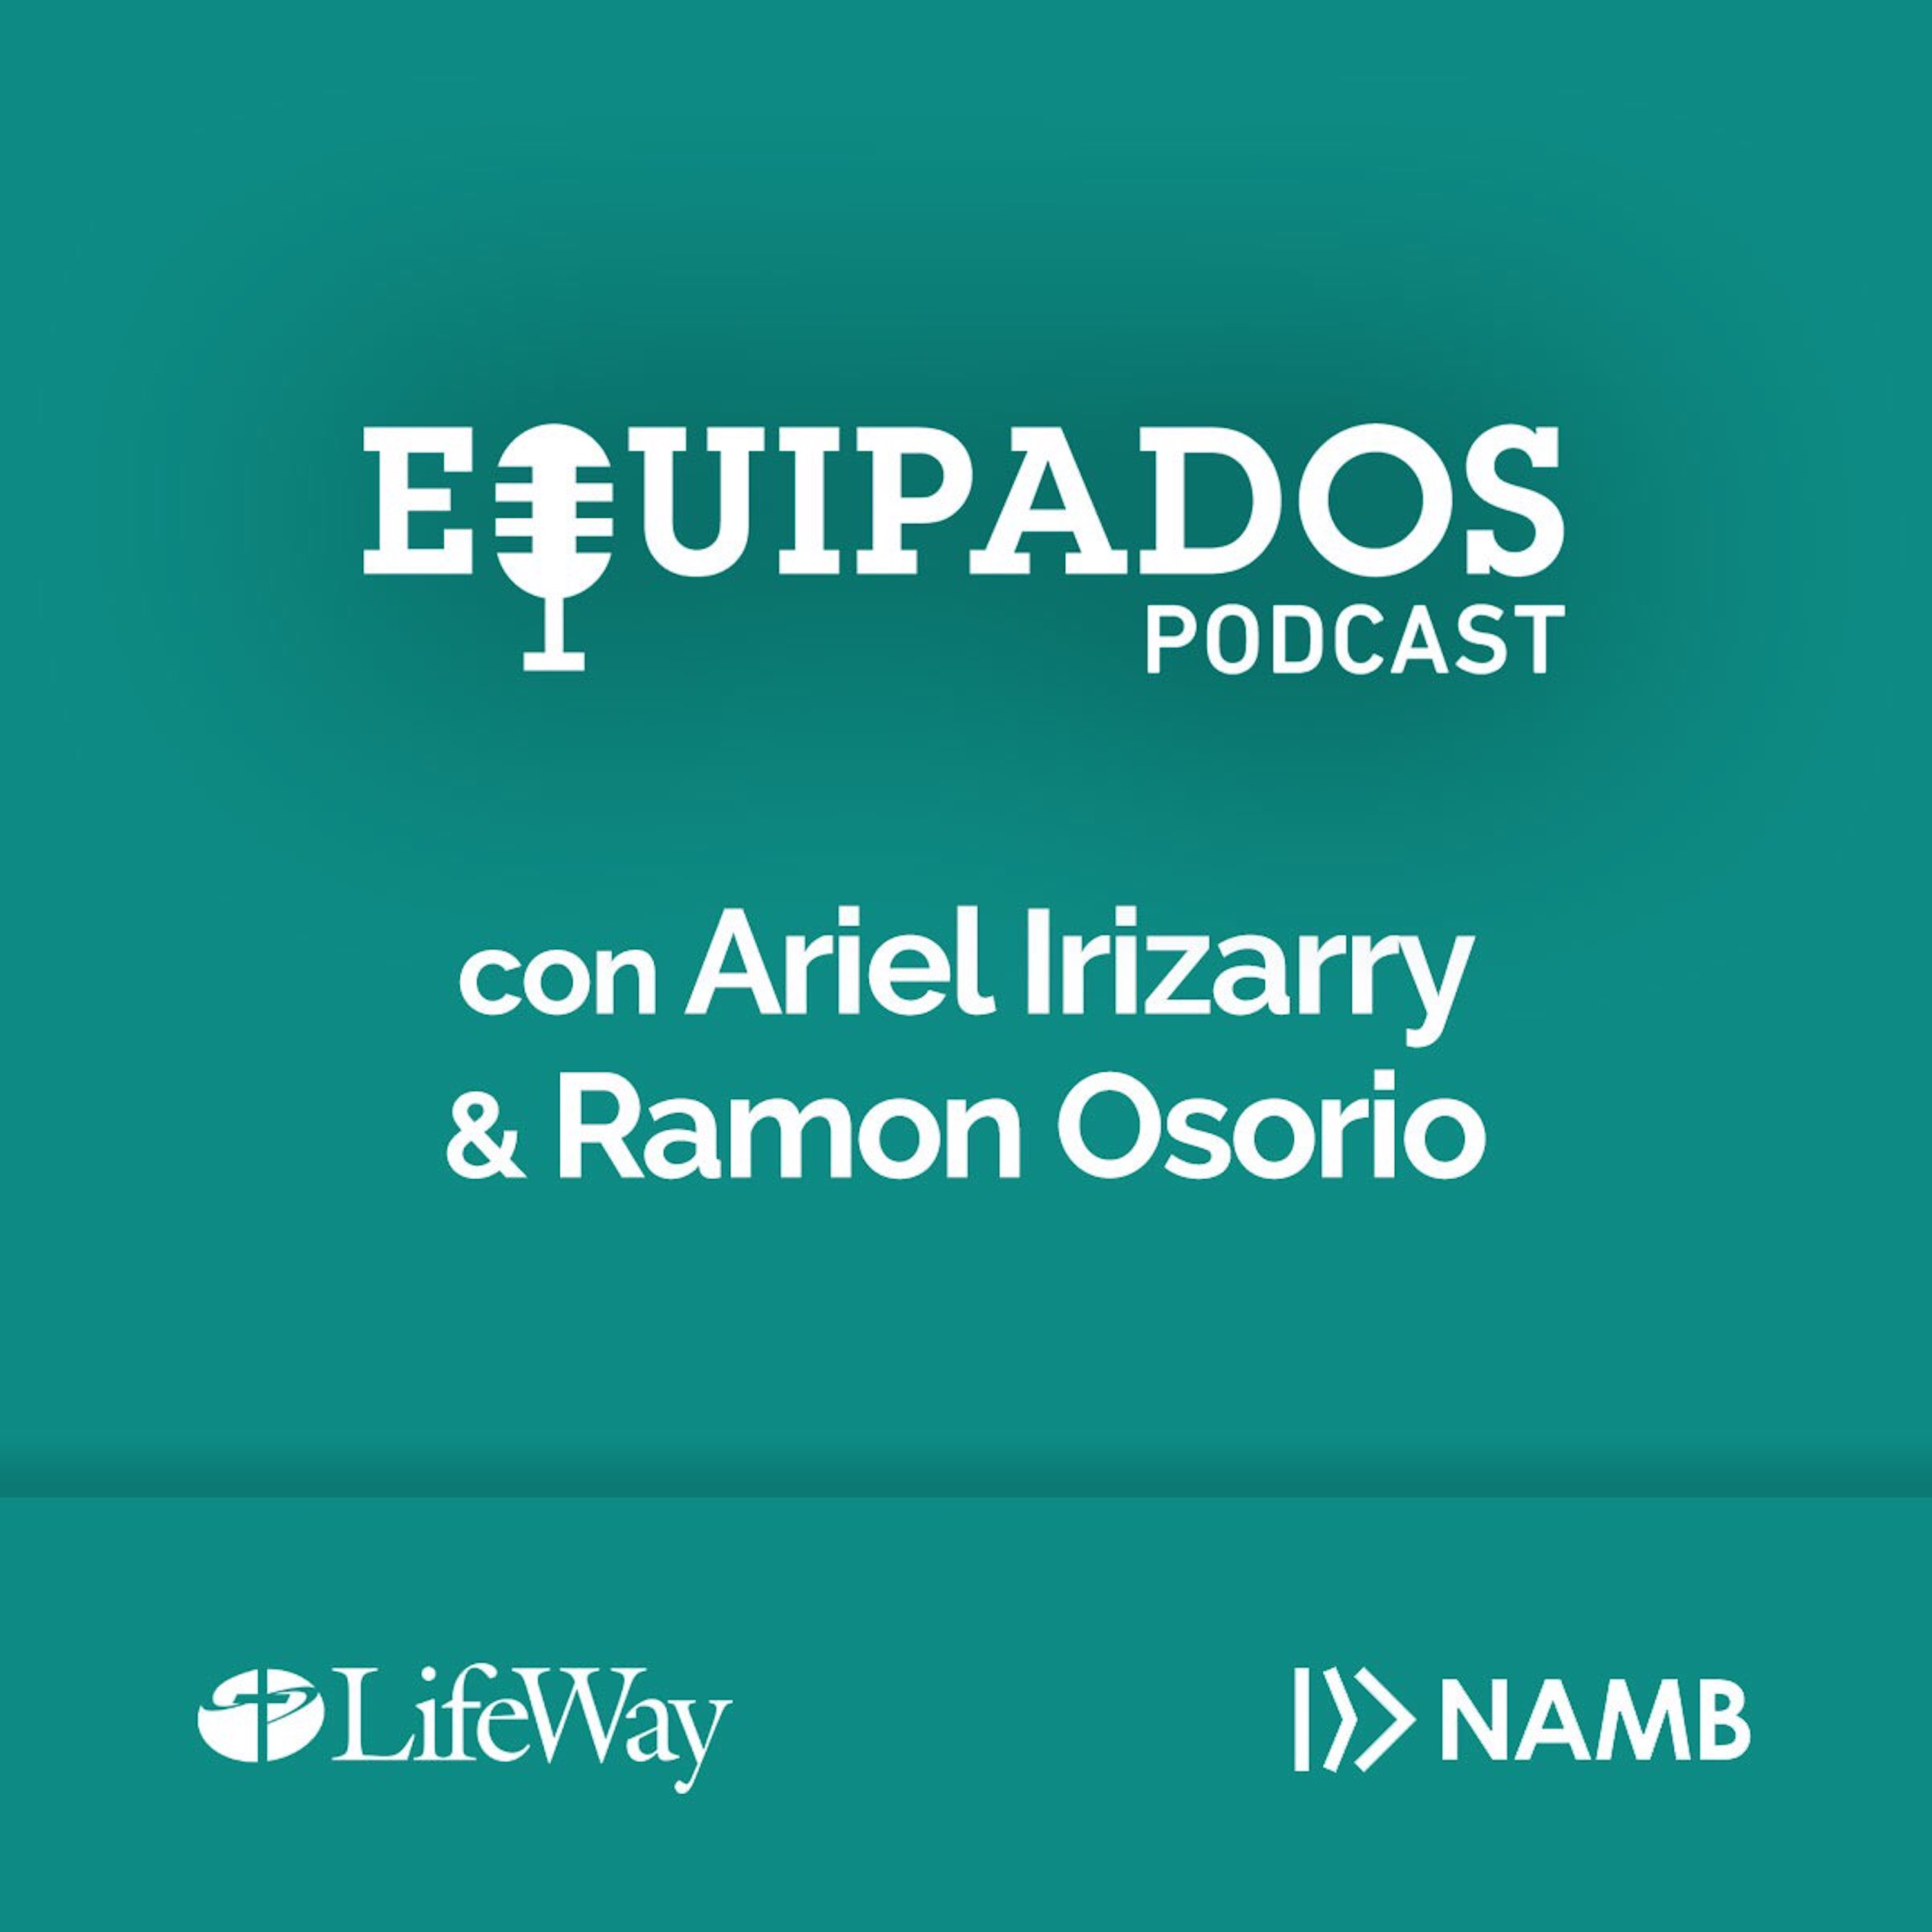 Equipados Podcast